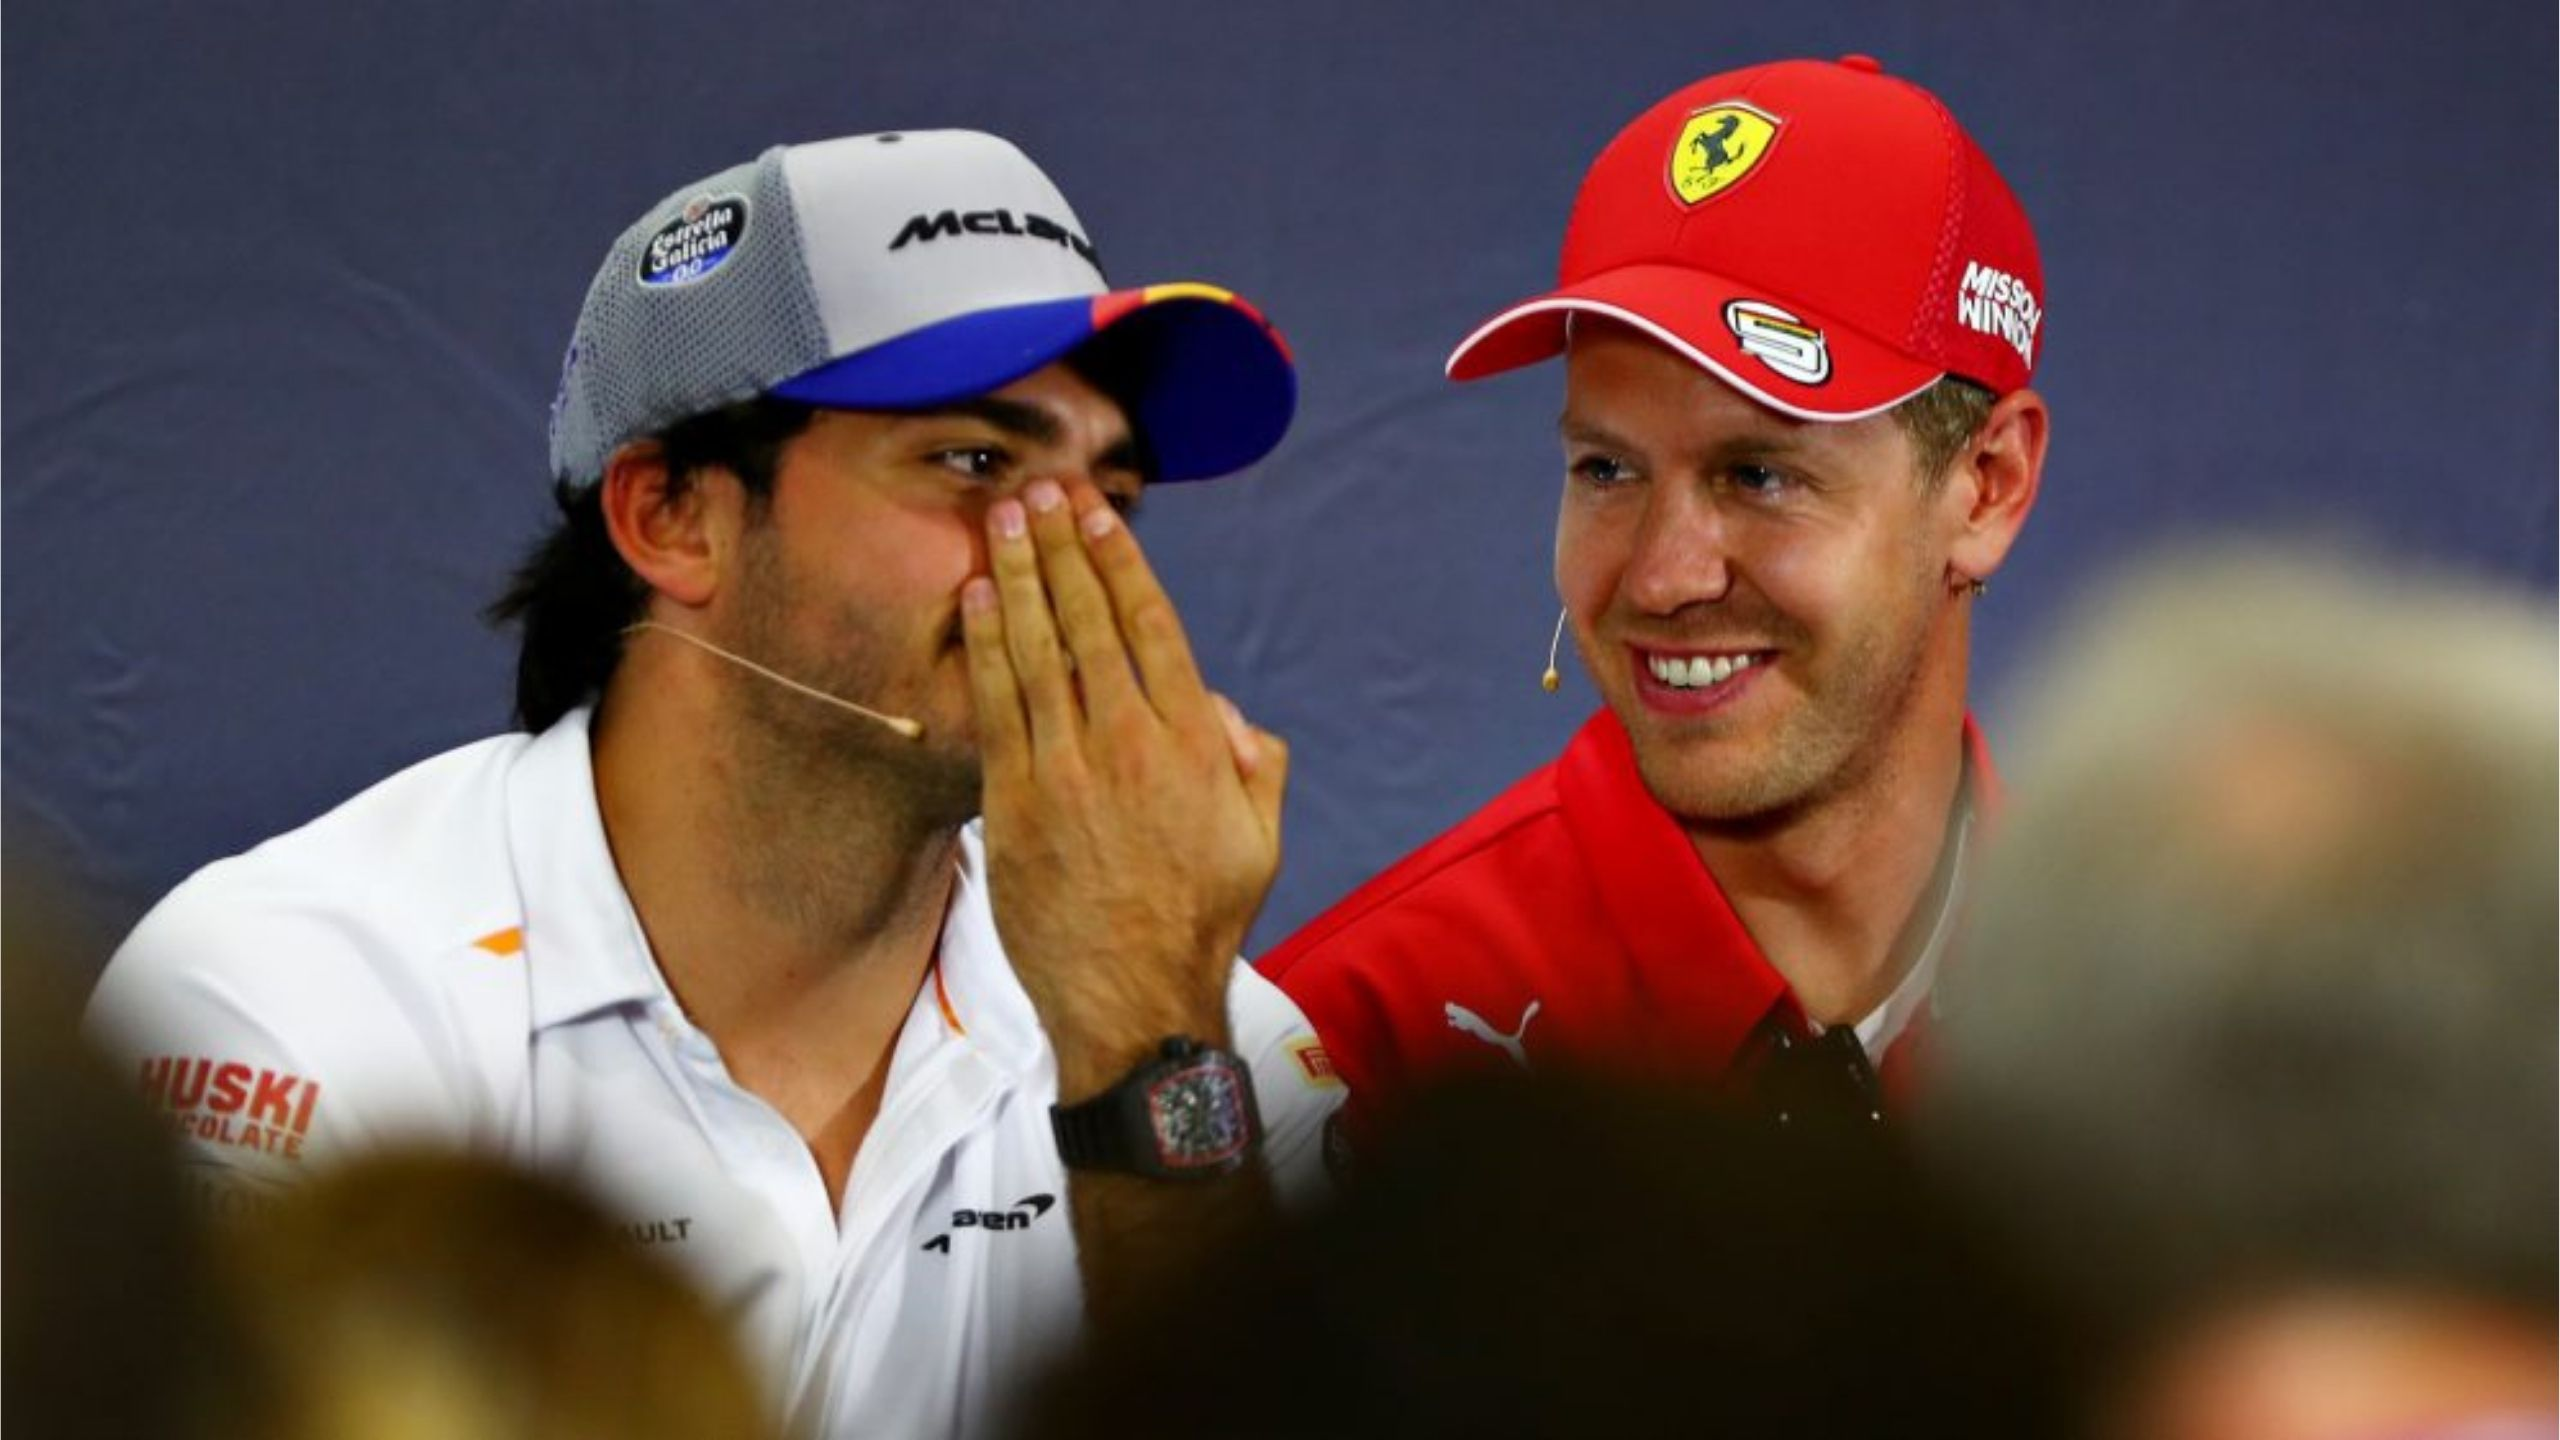 """""""They are the two best teams in history"""" - Carlos Sainz compares Ferrari and McLaren to Real Madrid and Barcelona respectively"""